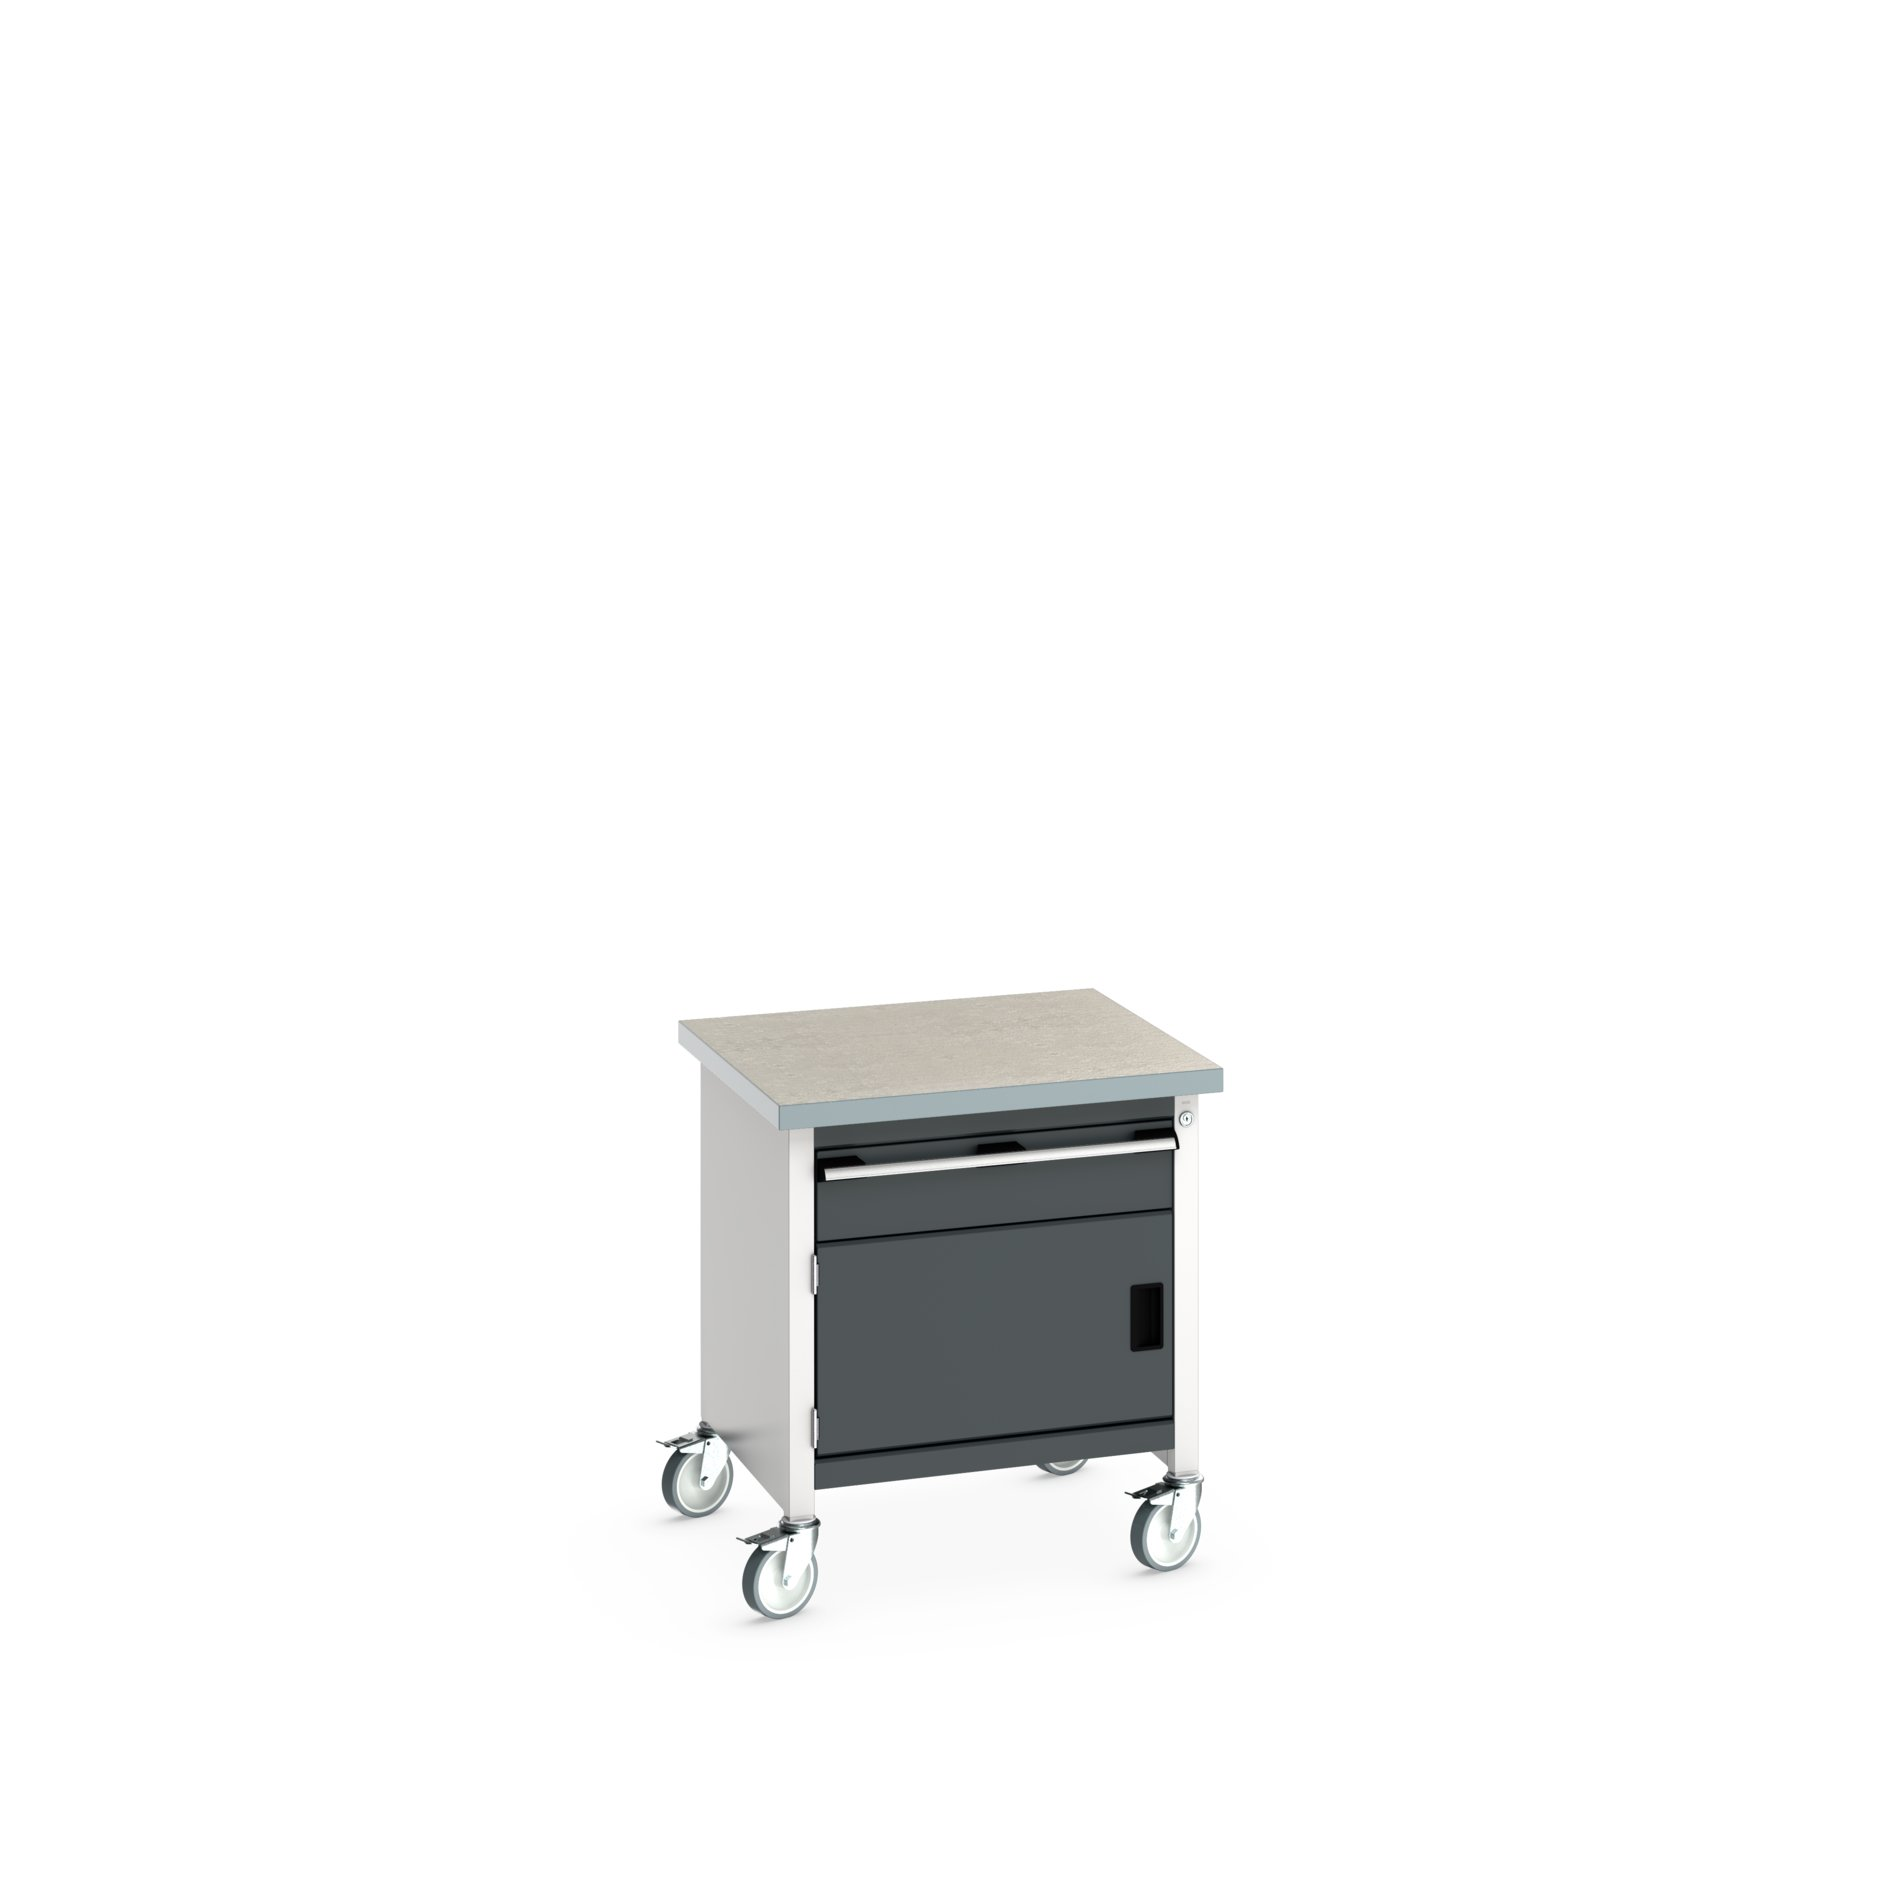 Bott Cubio Mobile Storage Bench With 1 Drawer - Full Cupboard